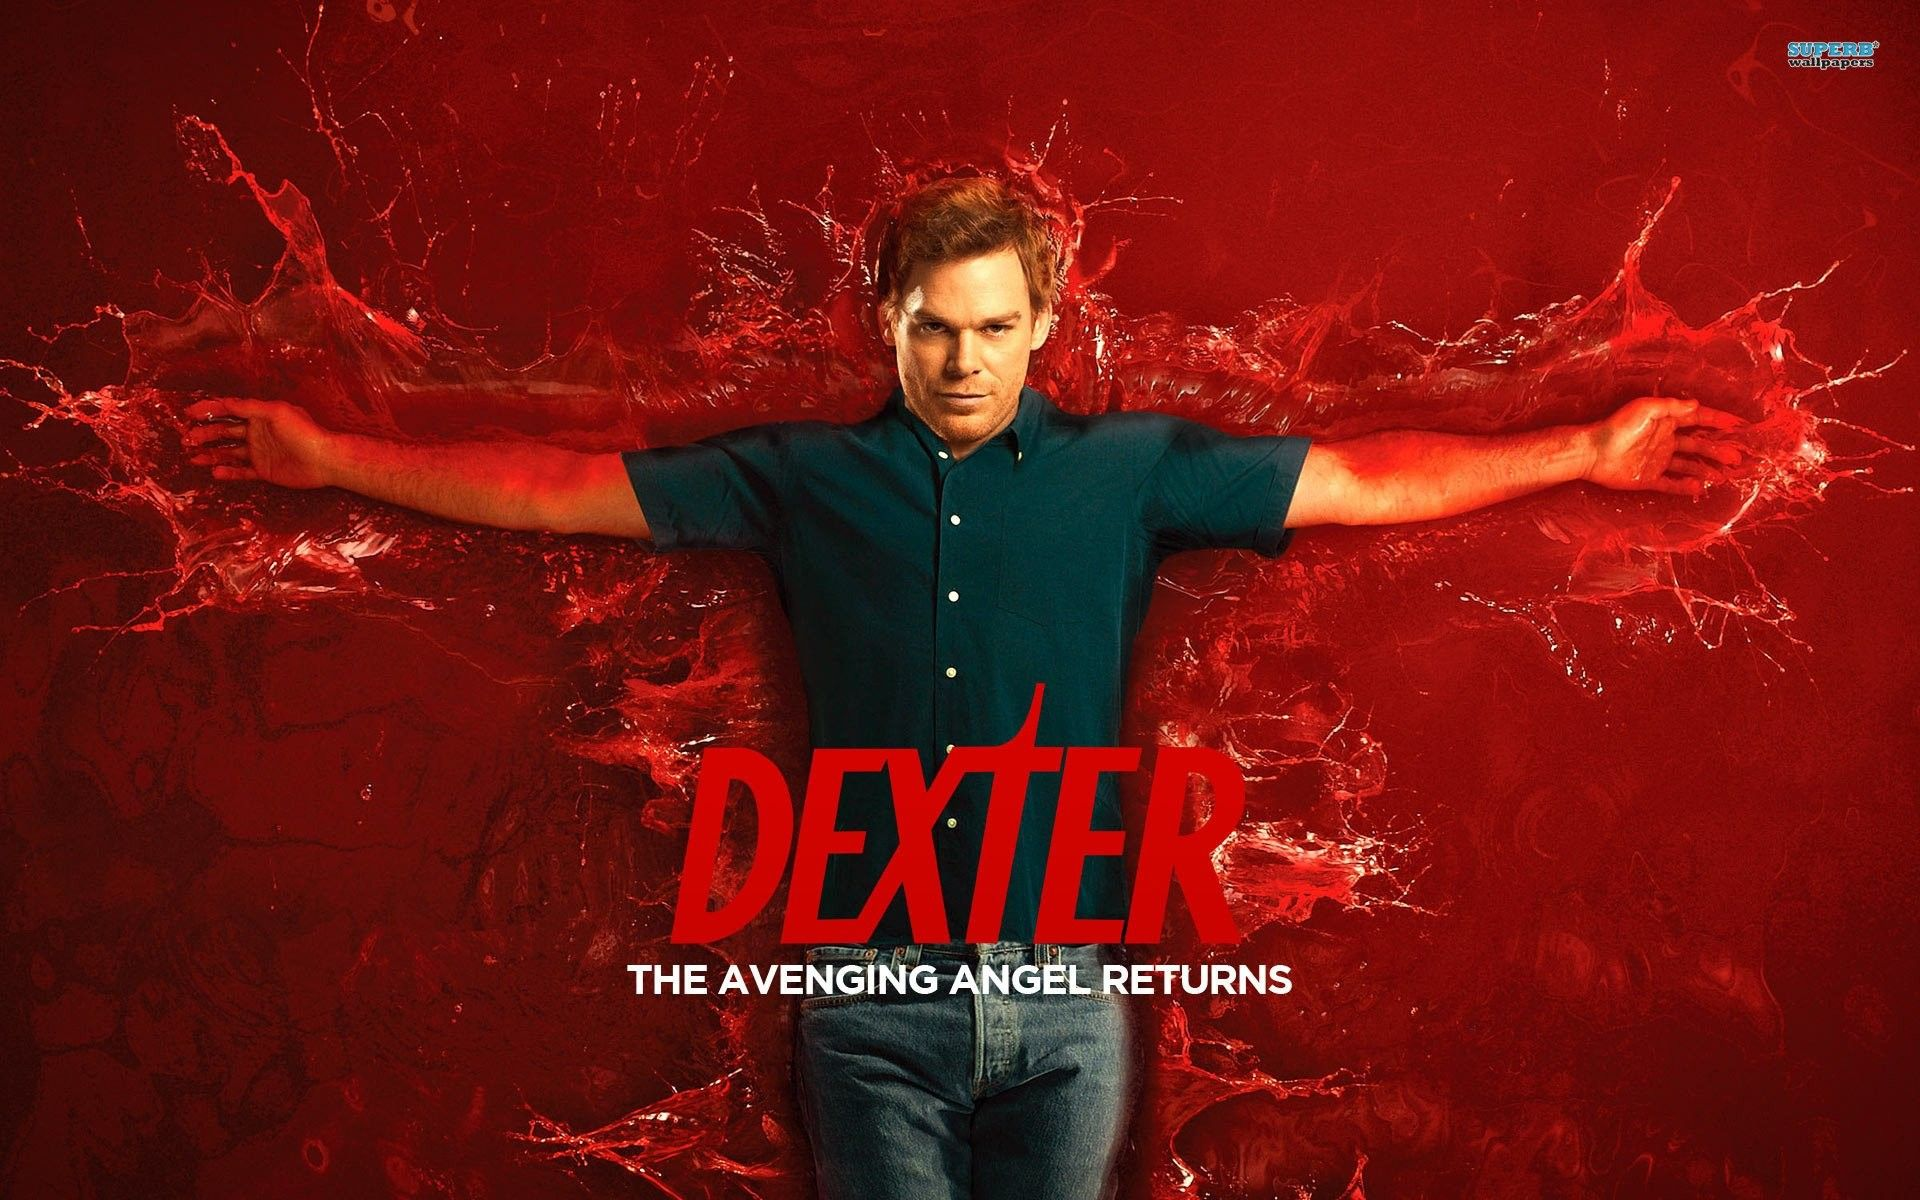 70 Dexter Hd Wallpapers On Wallpaperplay Dexter Wallpaper Dexter Morgan Dexter